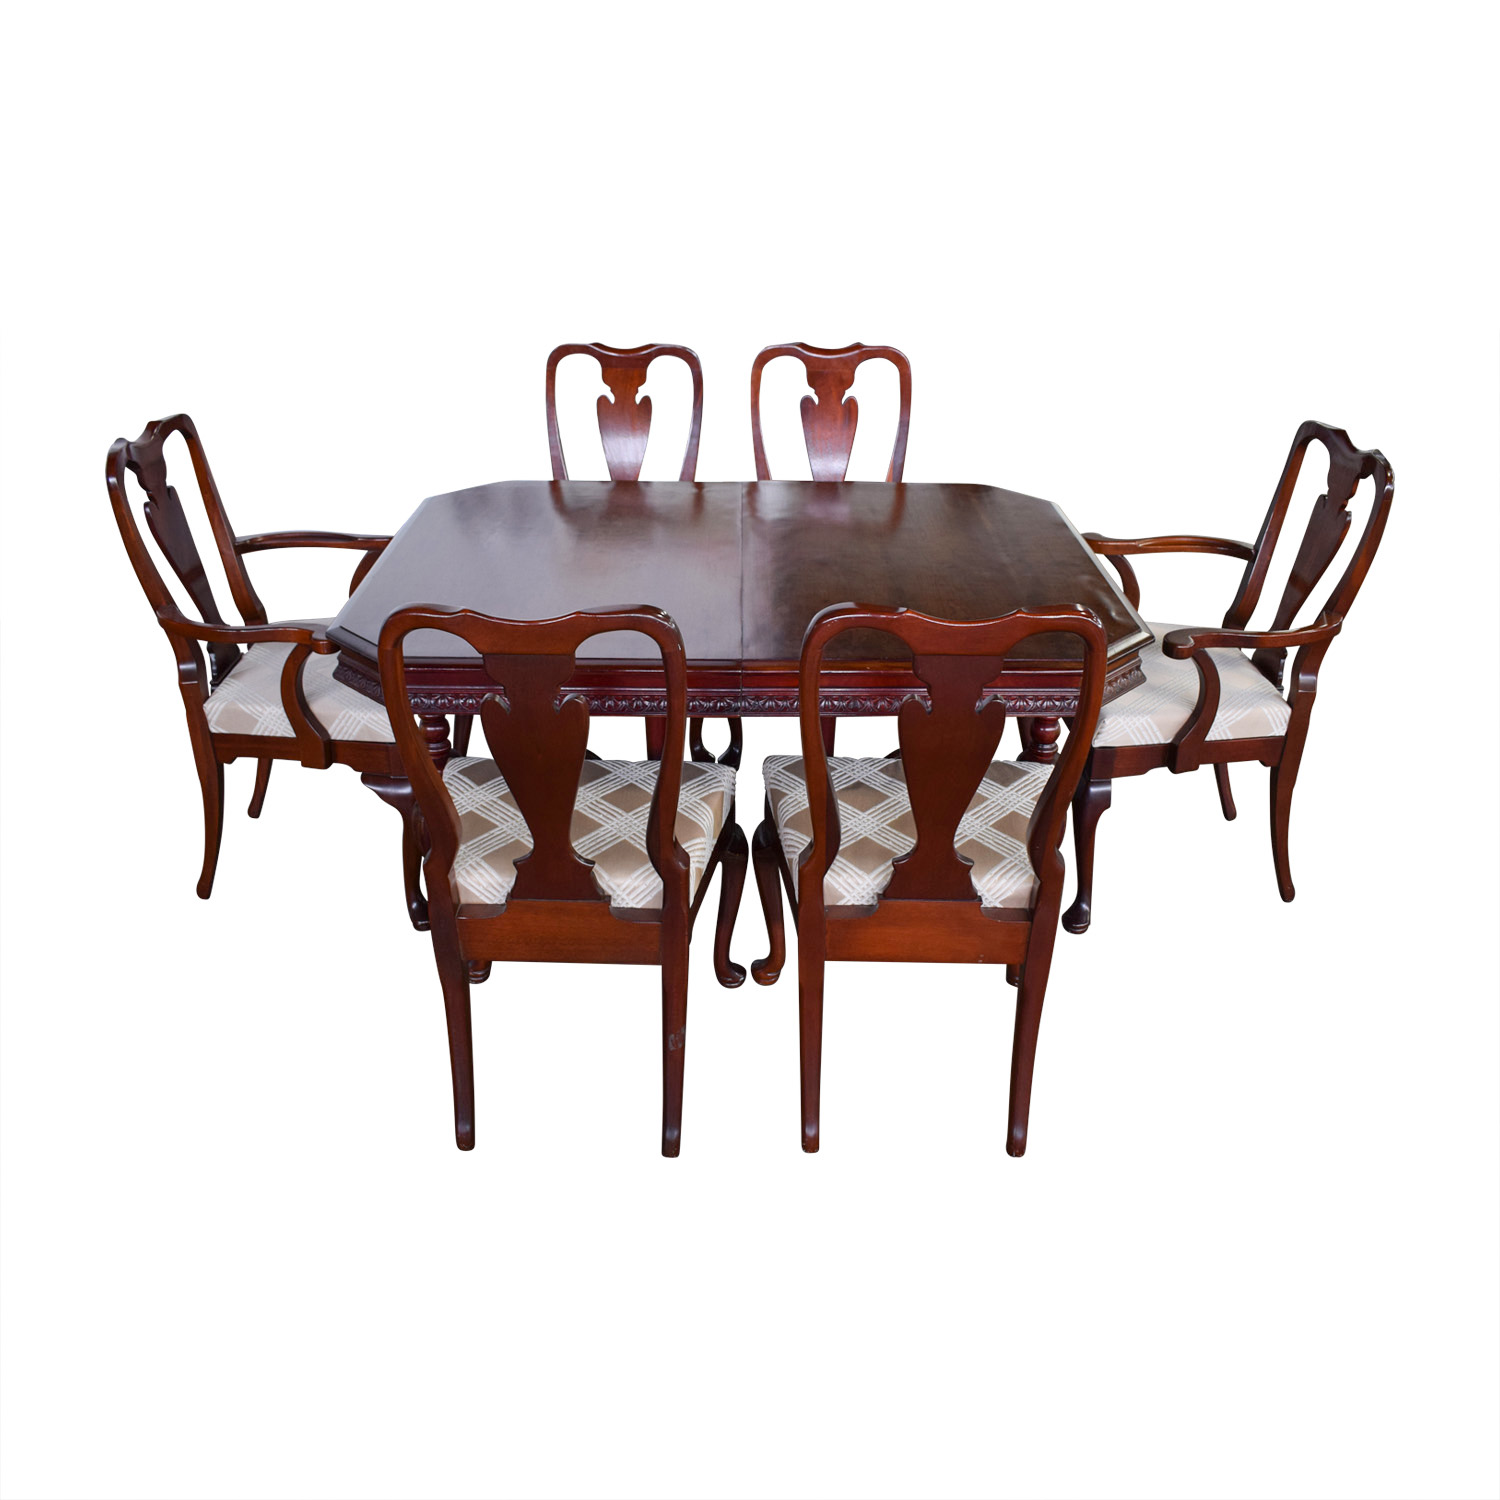 Mahogany Carved Wood Dining Set with Tan and White Upholstery